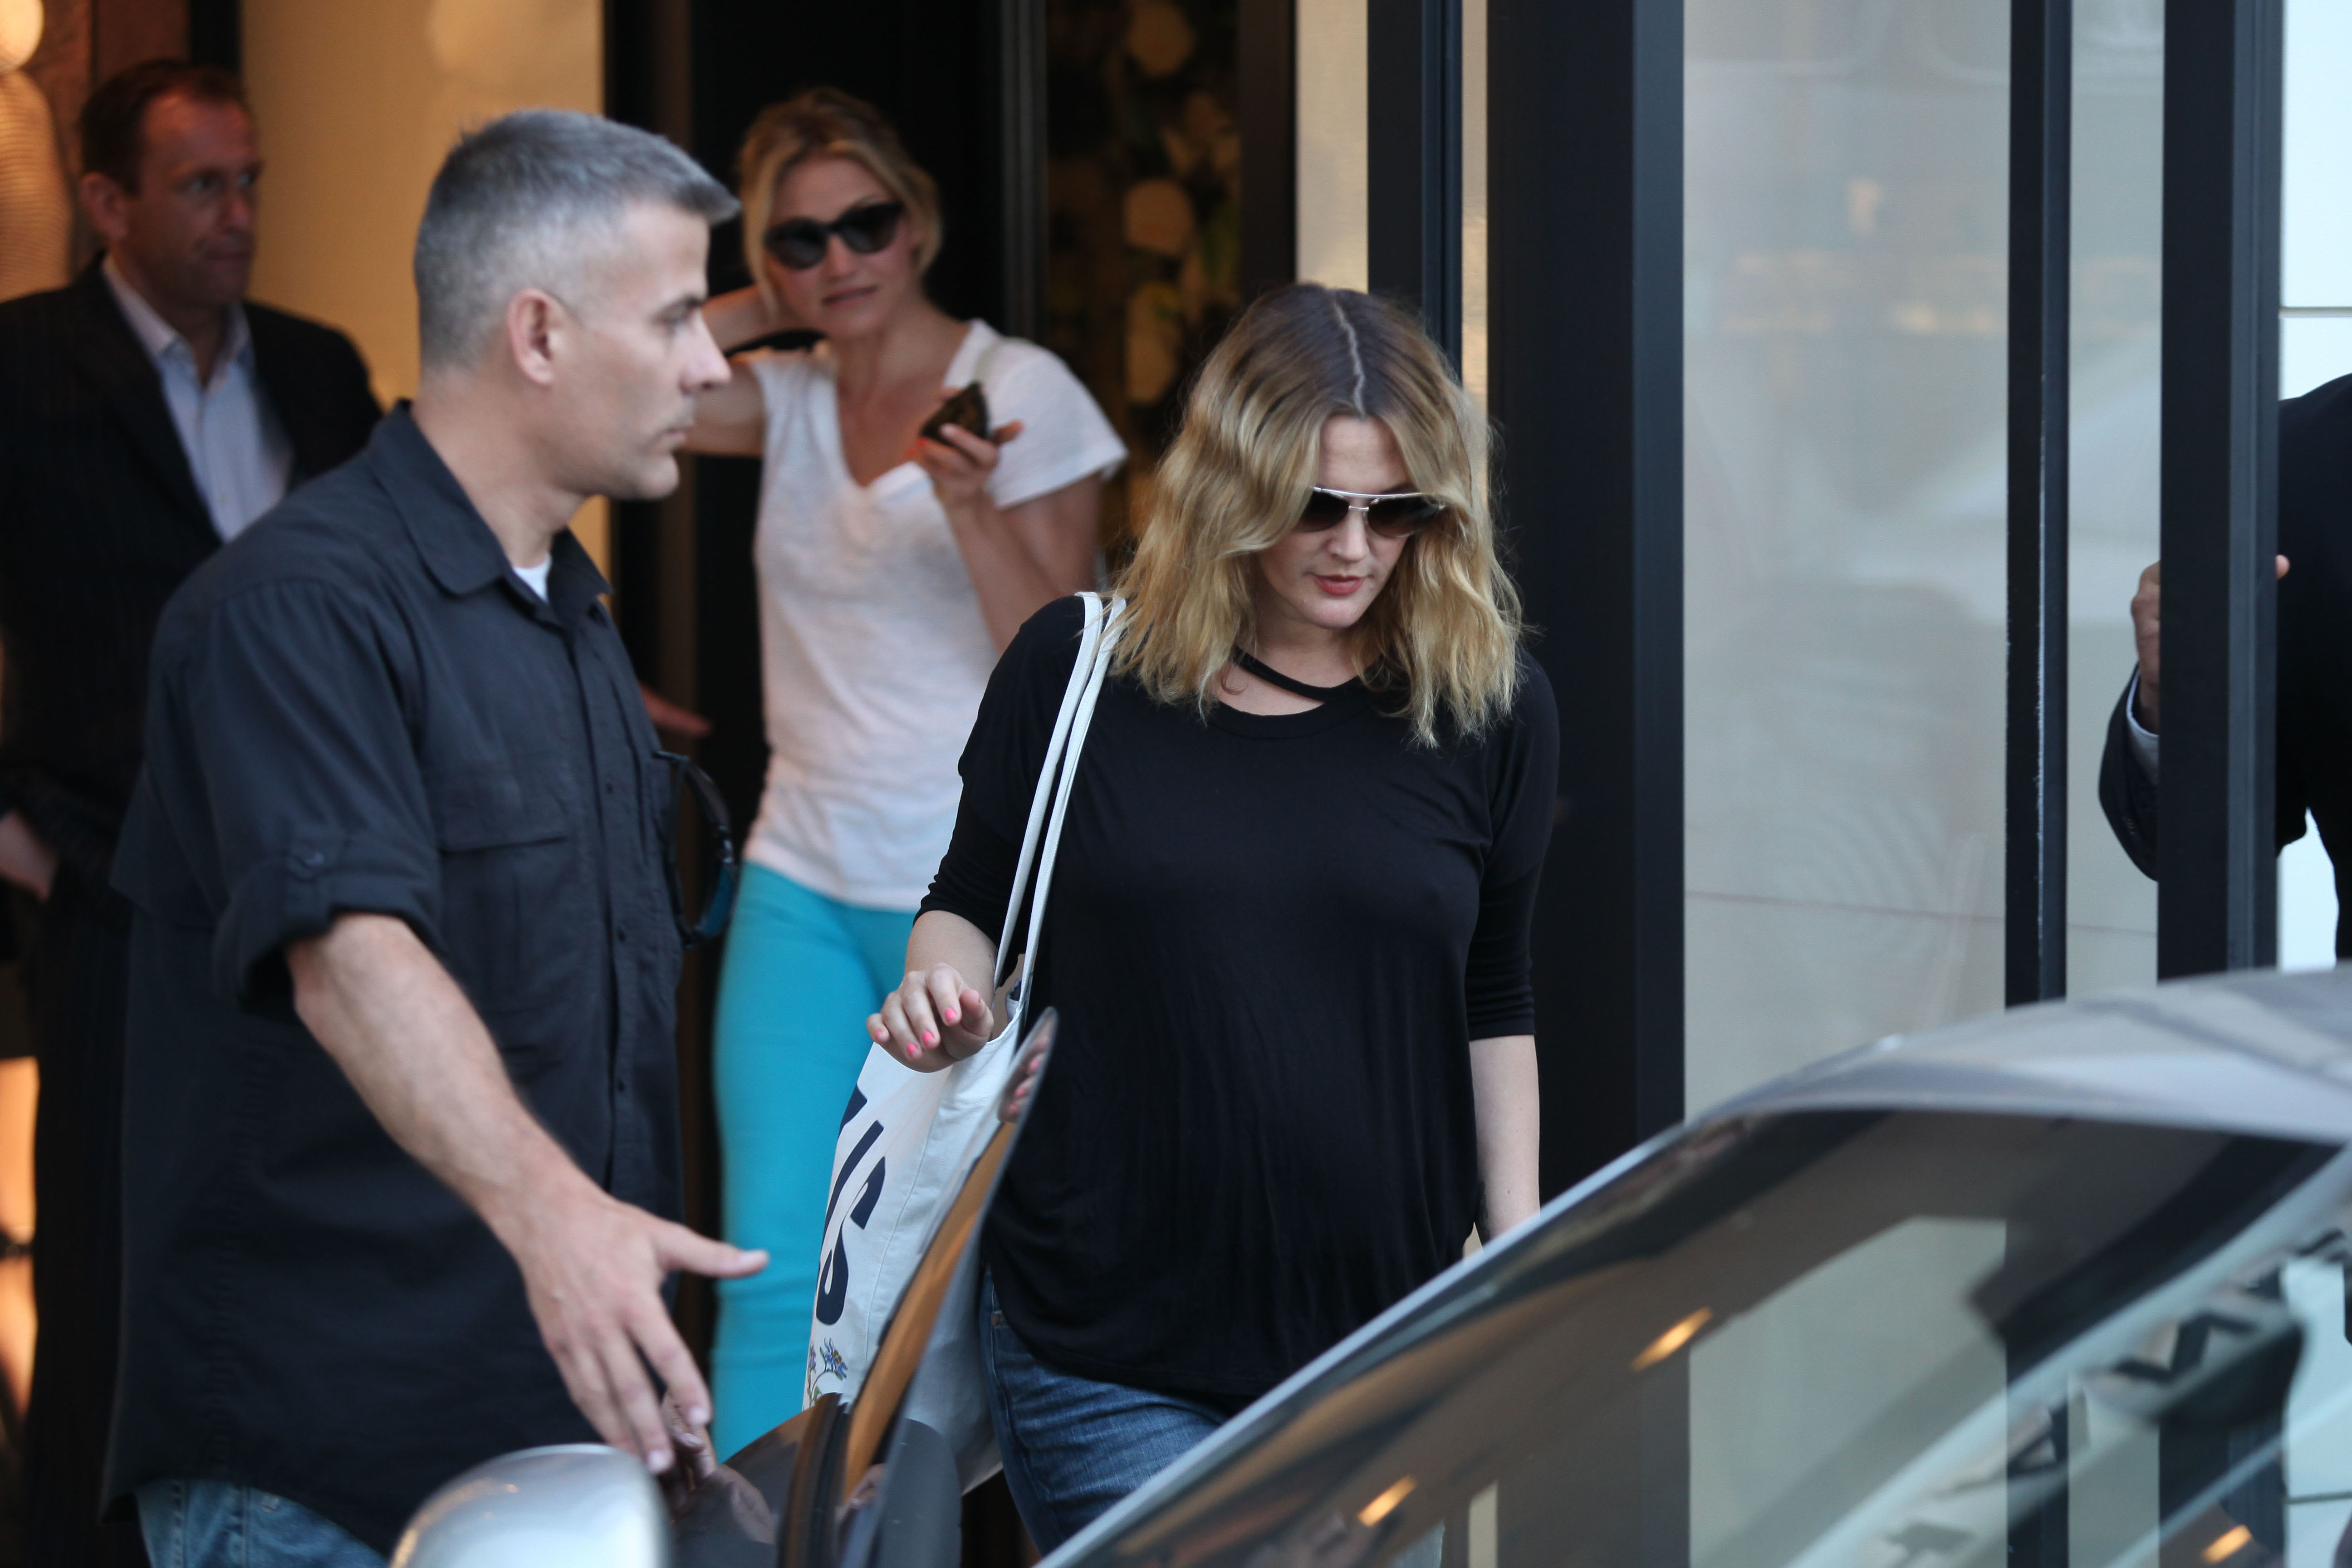 Pregnant Drew Barrymore Attends Final Wedding Dress Fitting With Bff